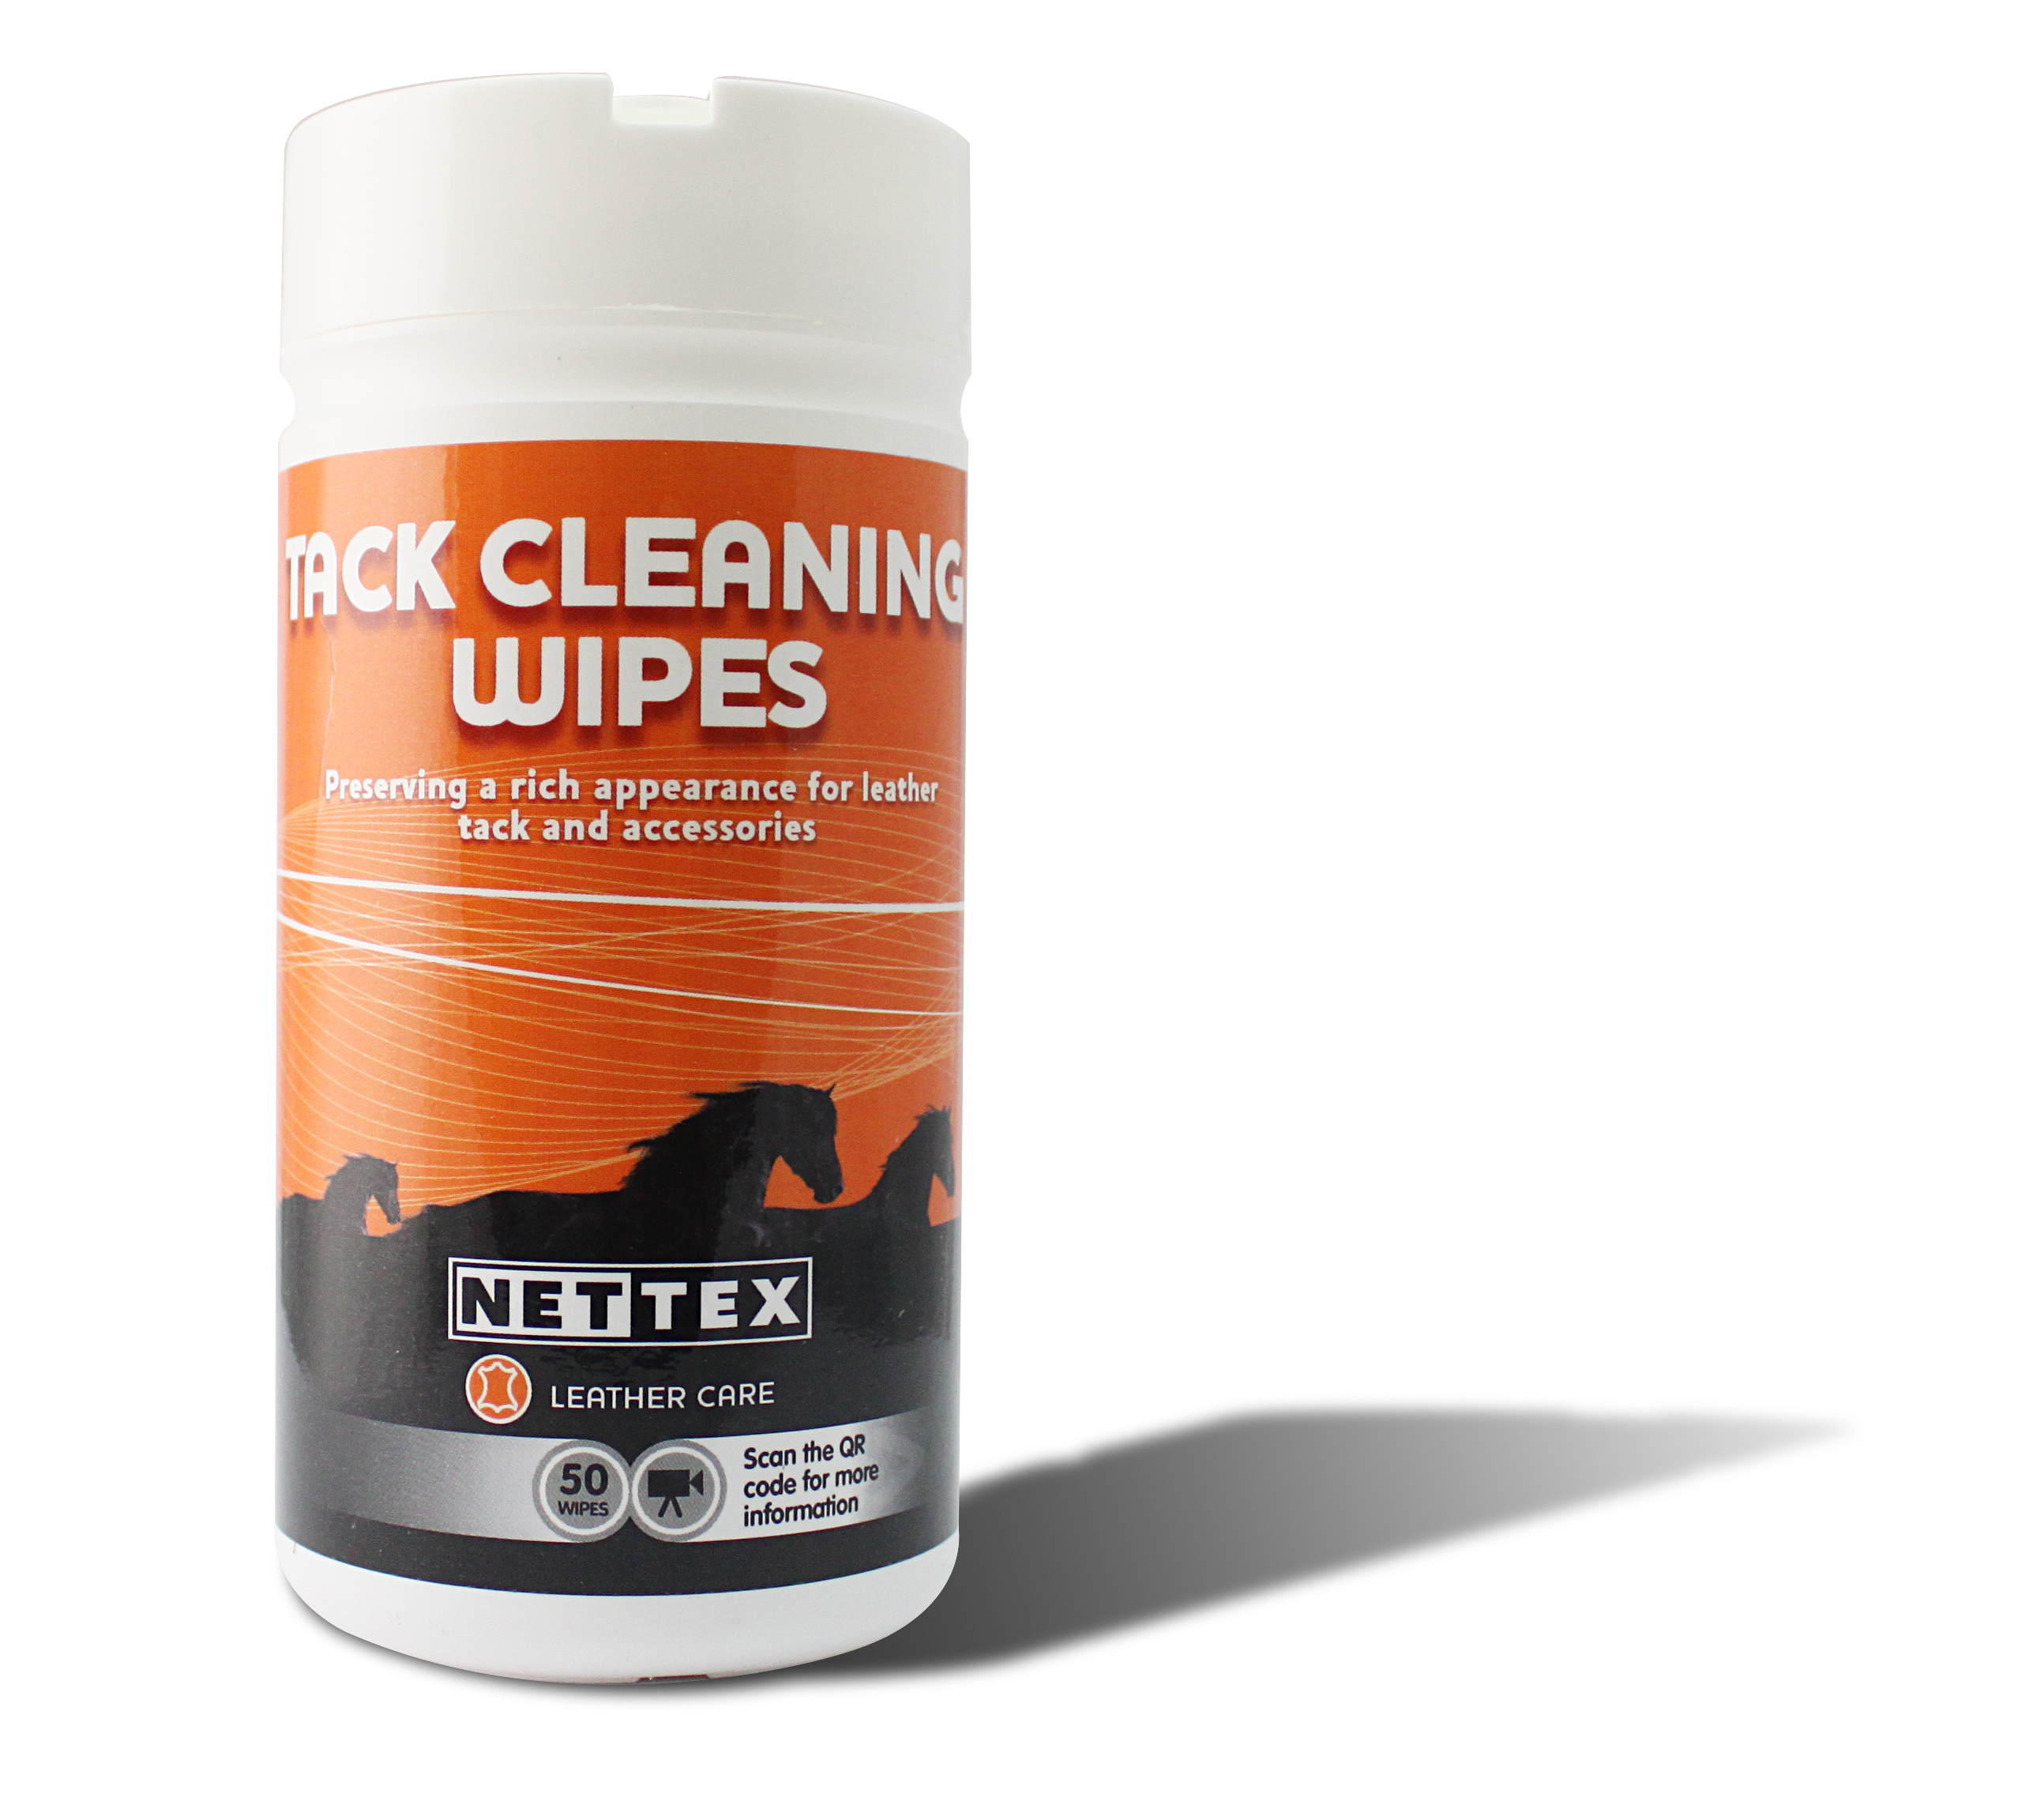 Net-Tex Tack Cleaning Wipes